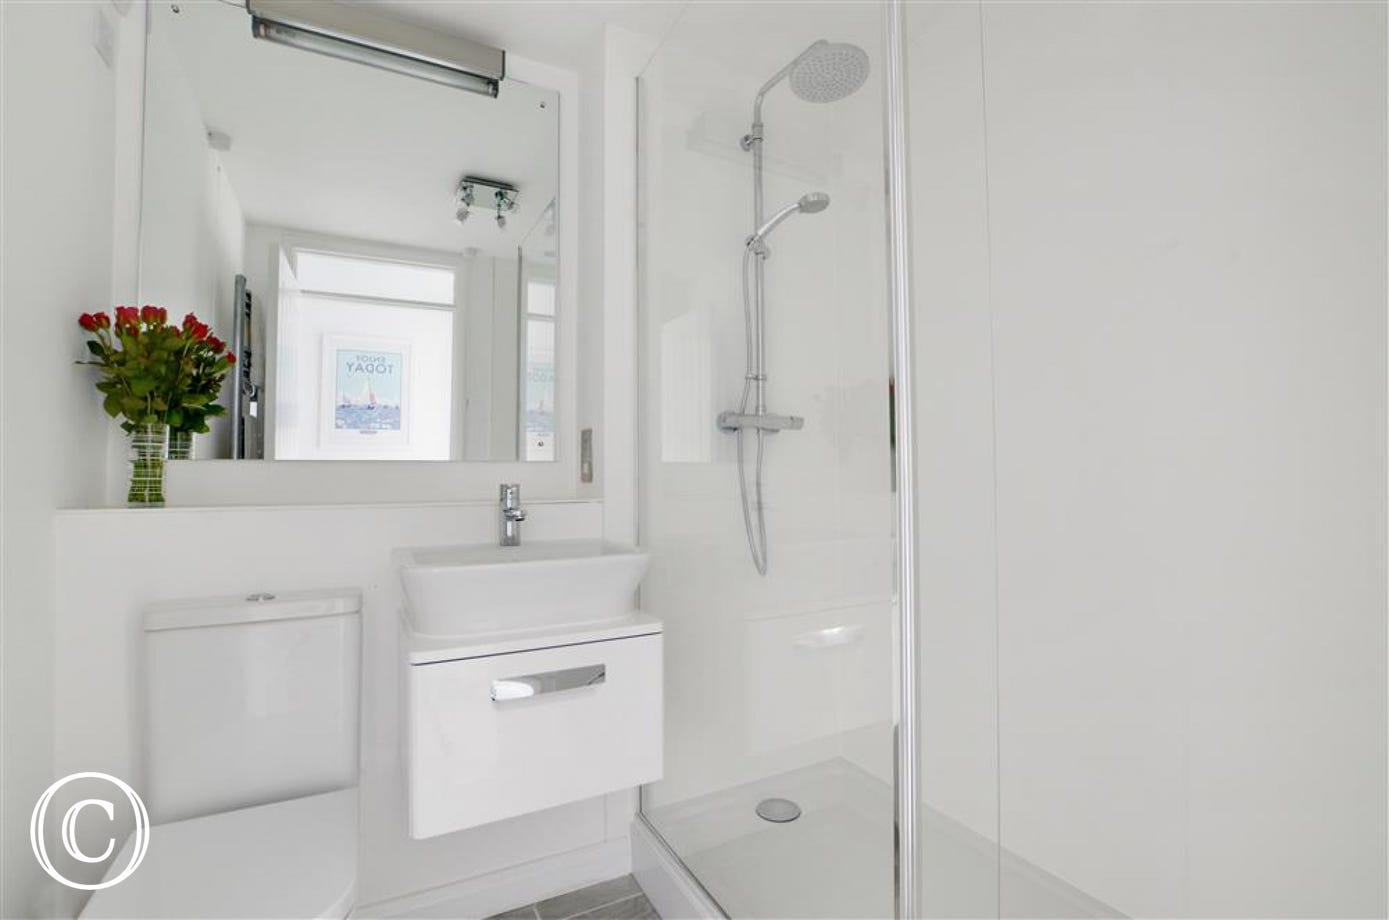 Newly fitted bathroom with walk-in shower